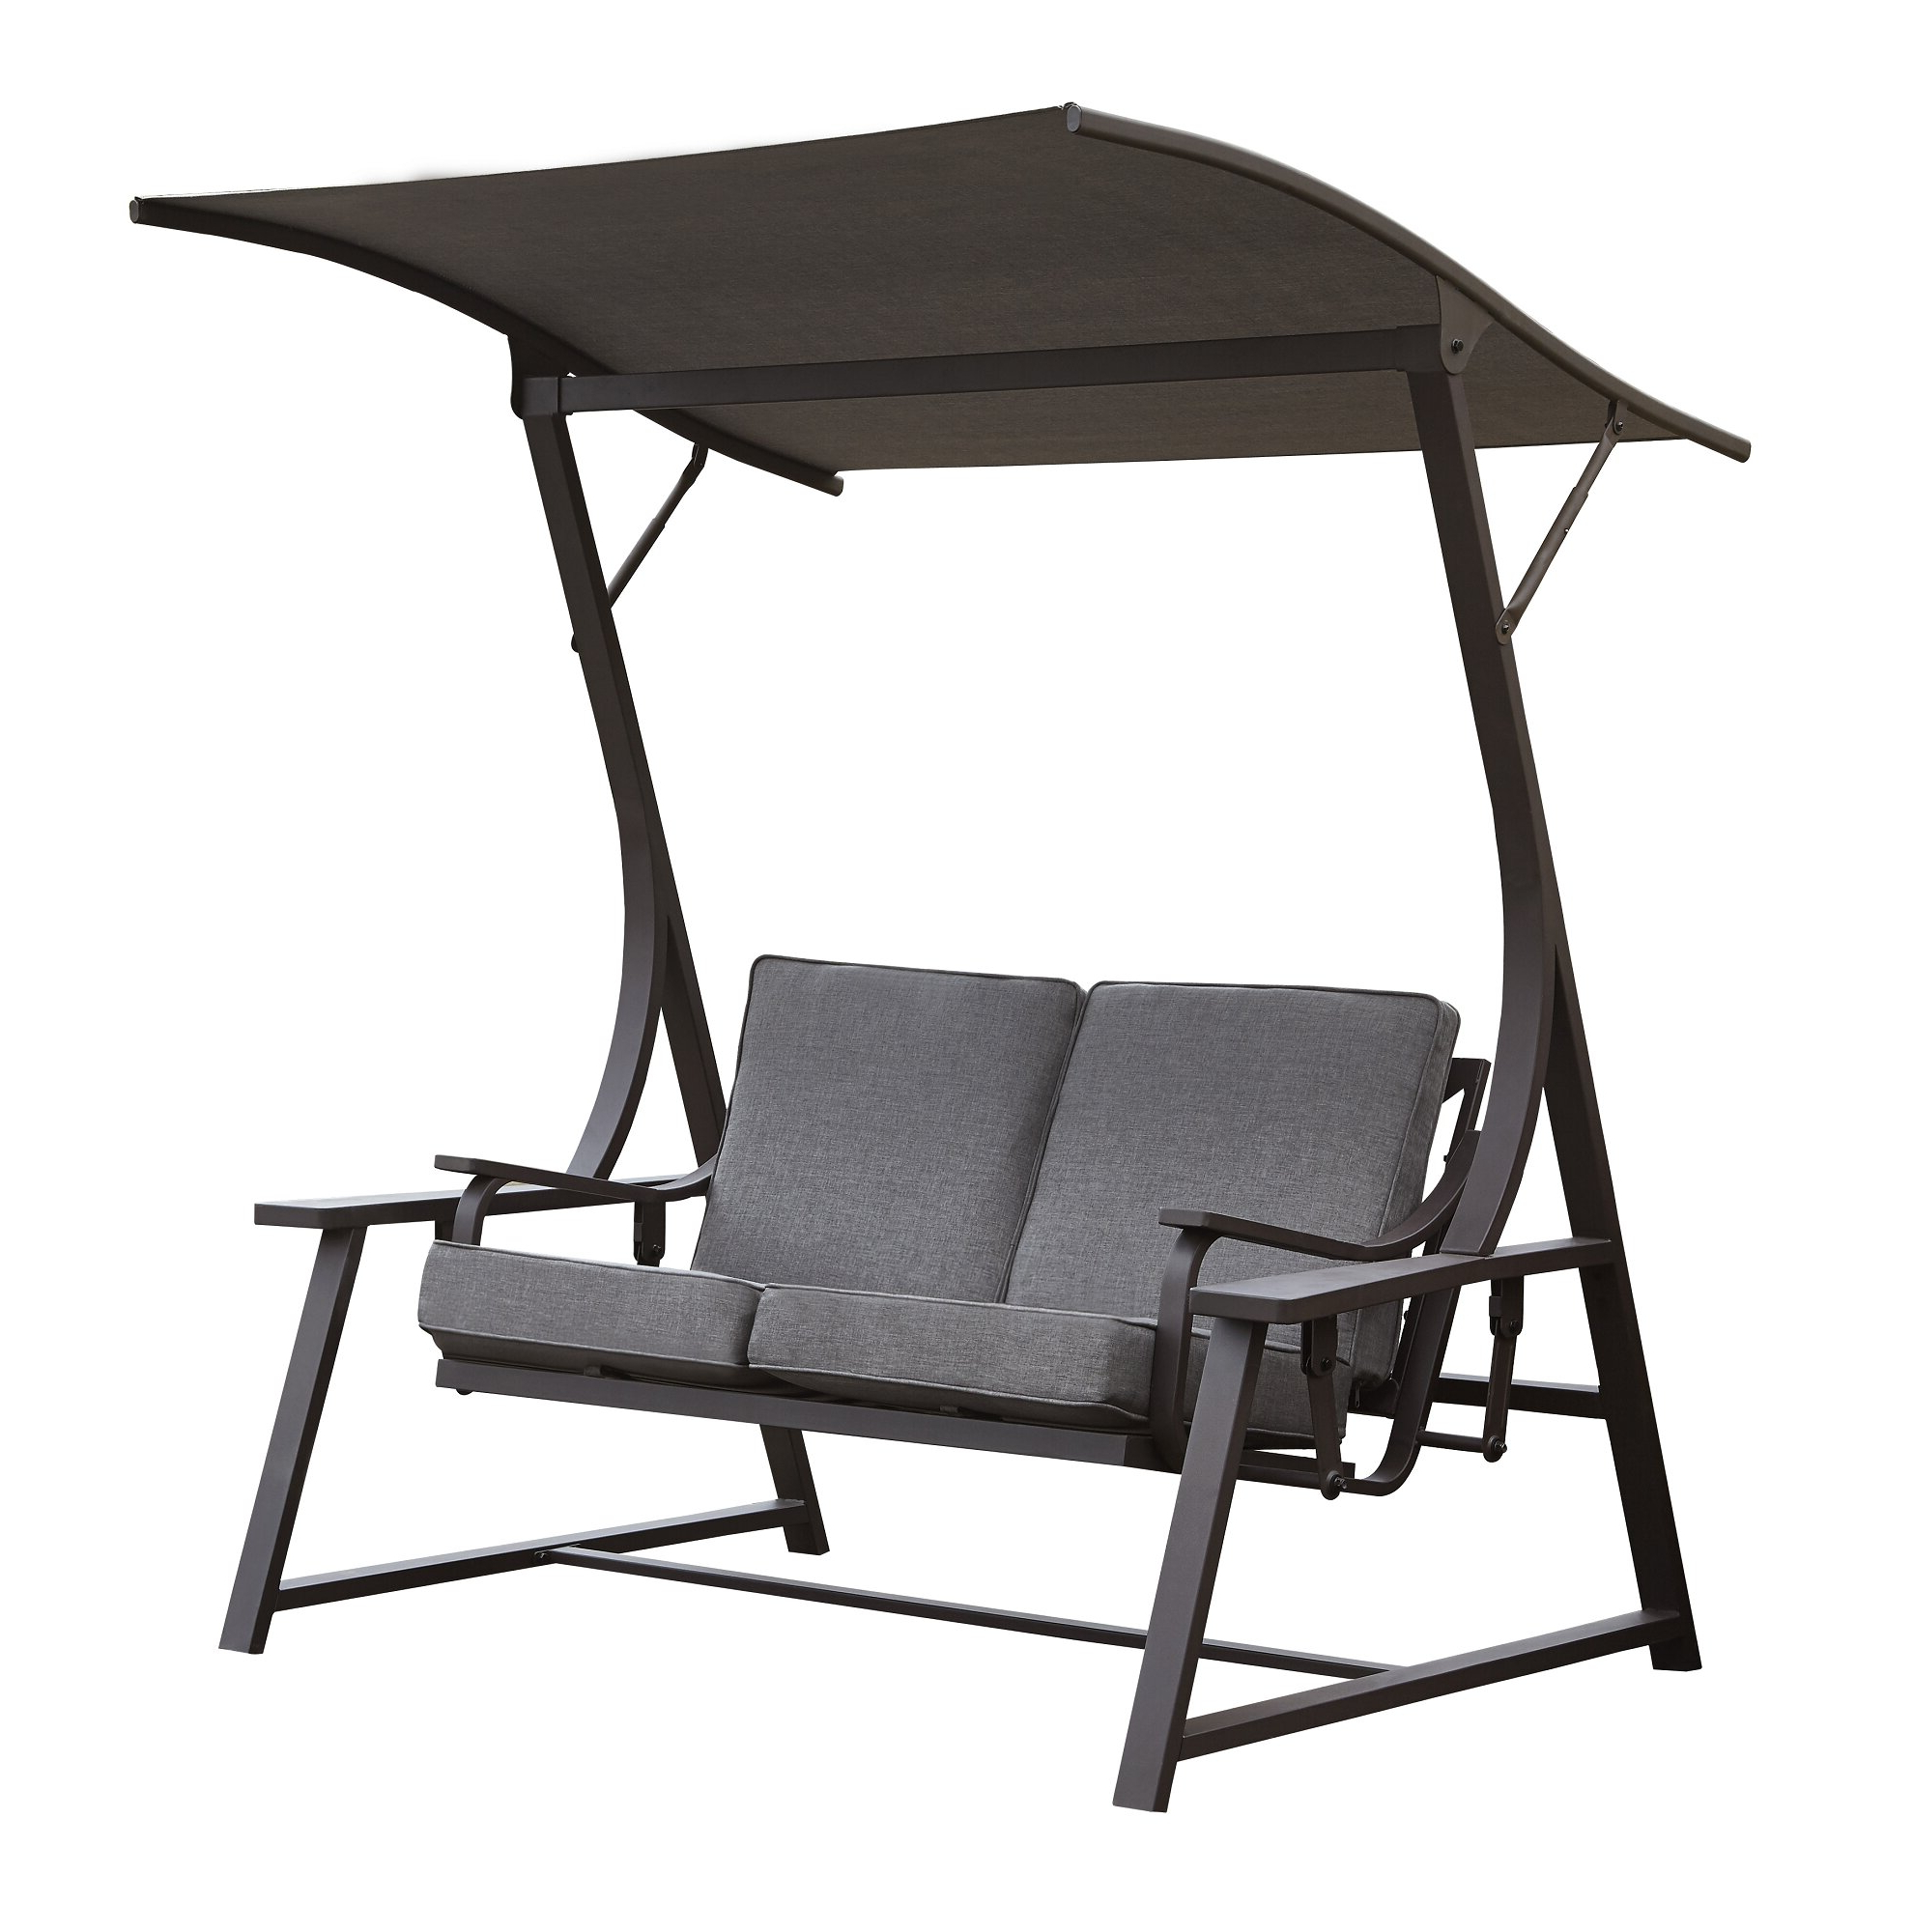 2019 Canopy Patio Porch Swing With Stand Pertaining To Marquette Glider Porch Swing With Stand (View 18 of 30)